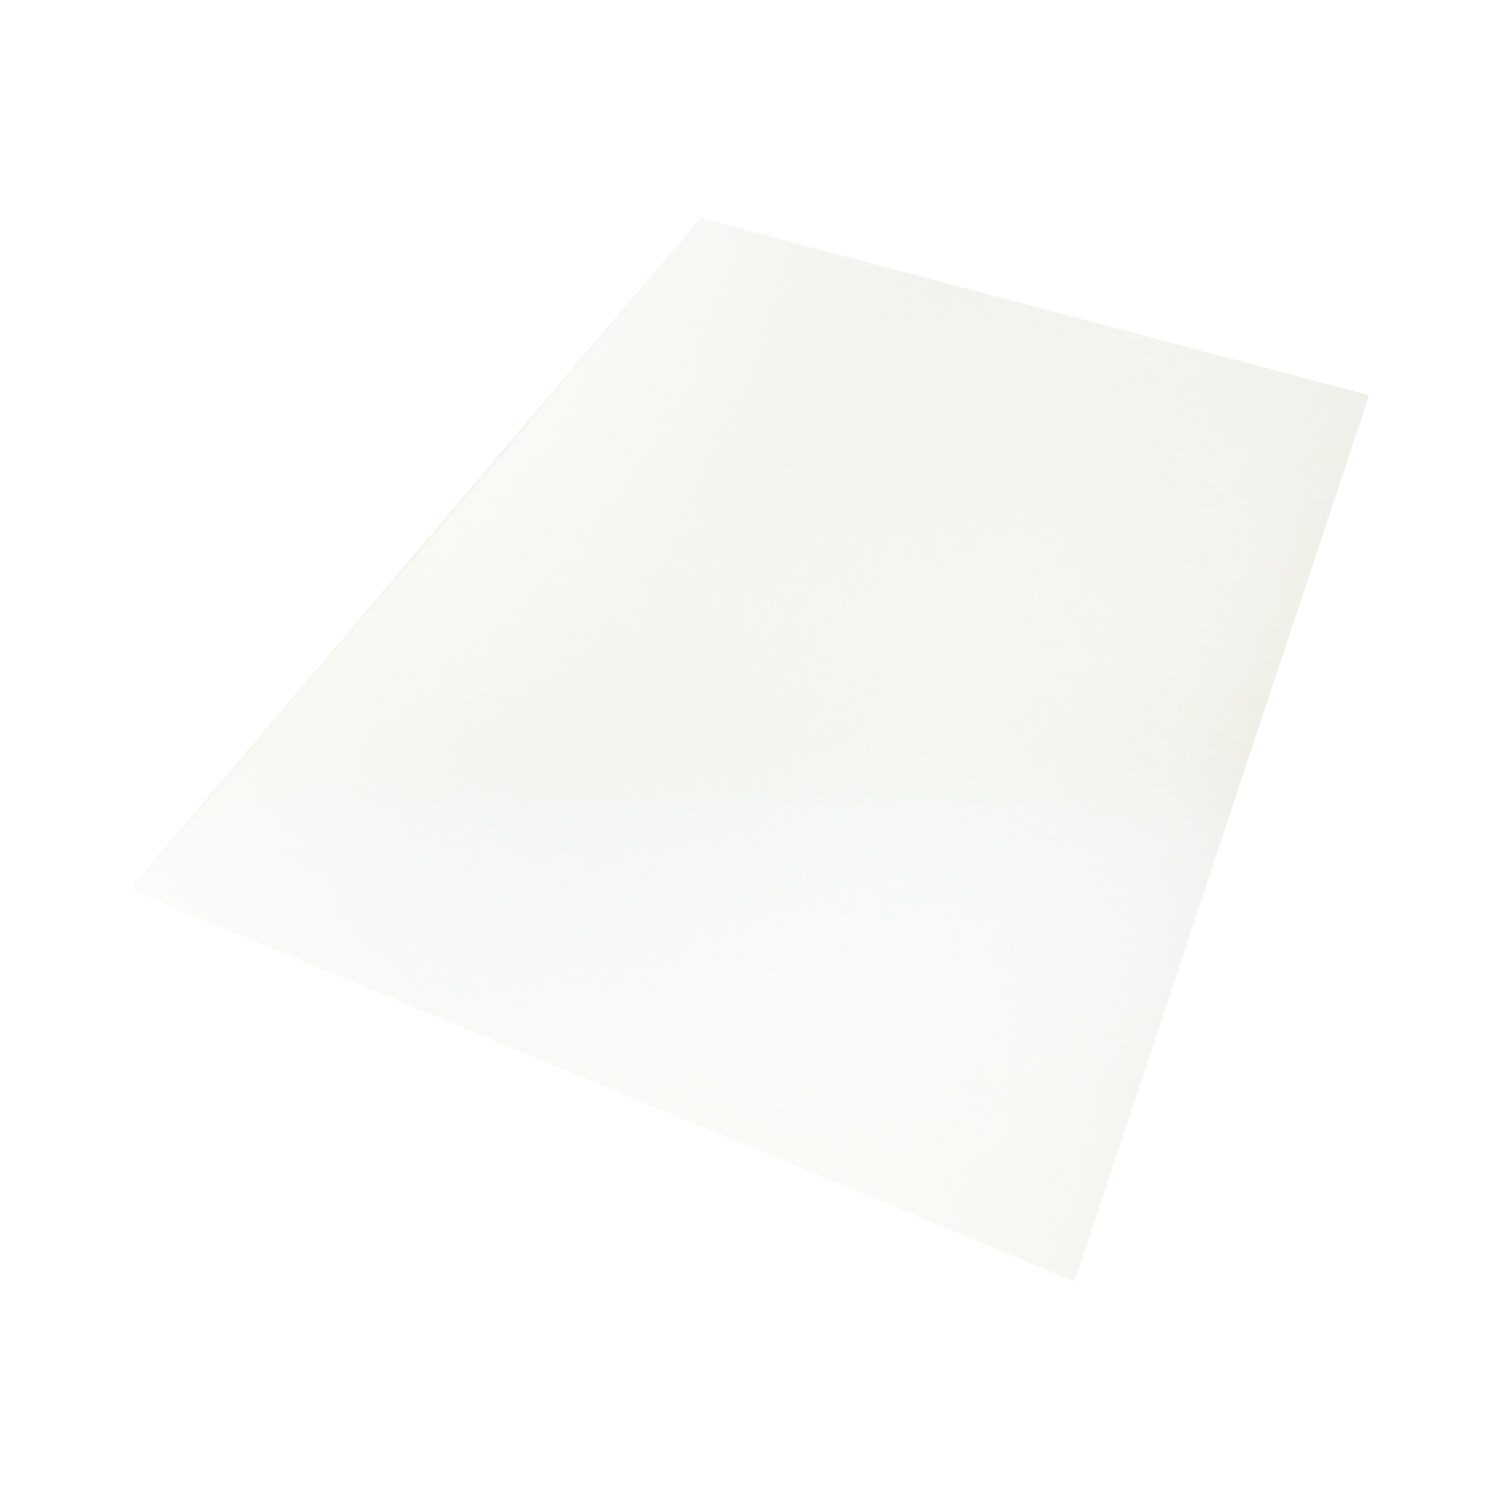 Leitz A4 High-Gloss White Binding Covers 250gsm (500)